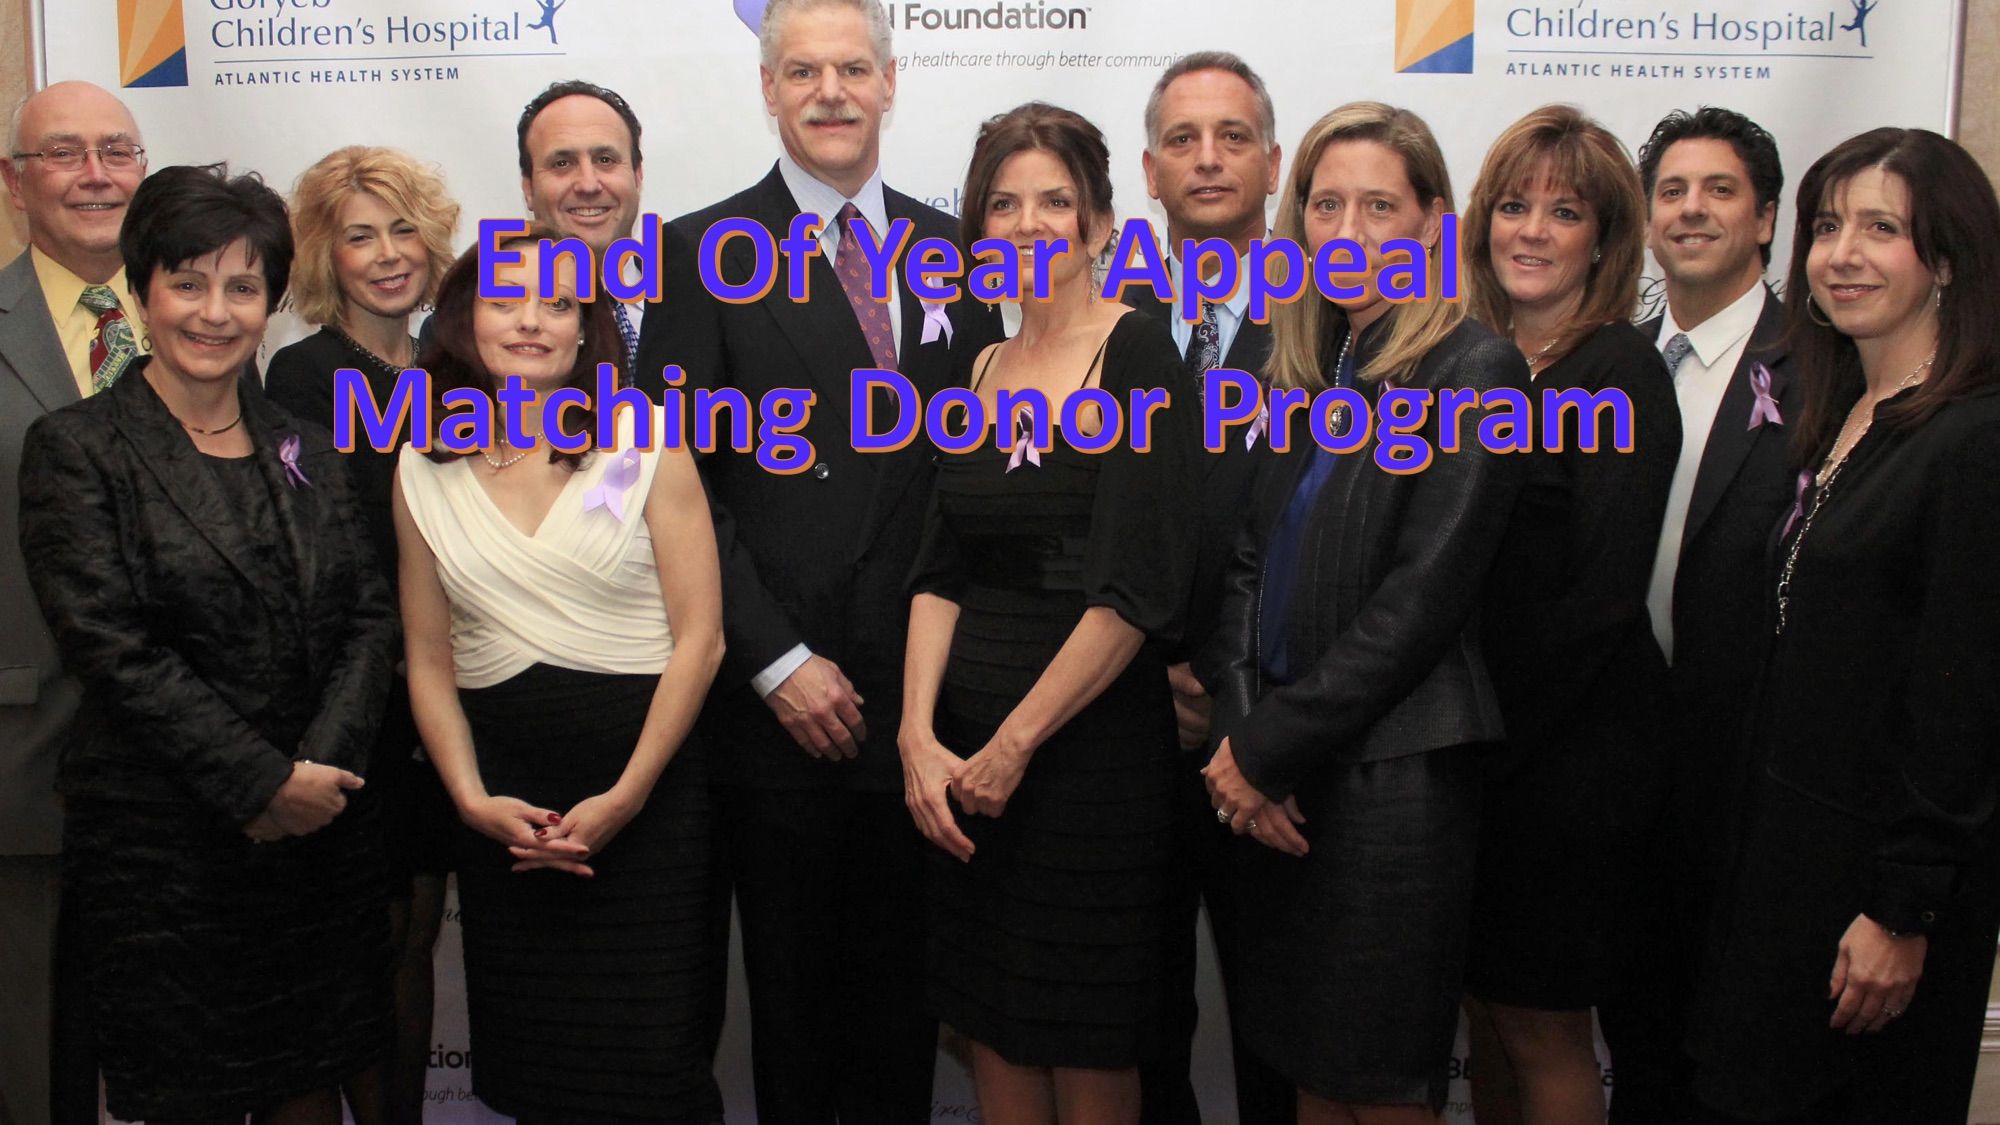 Announcing Matching Donor Program